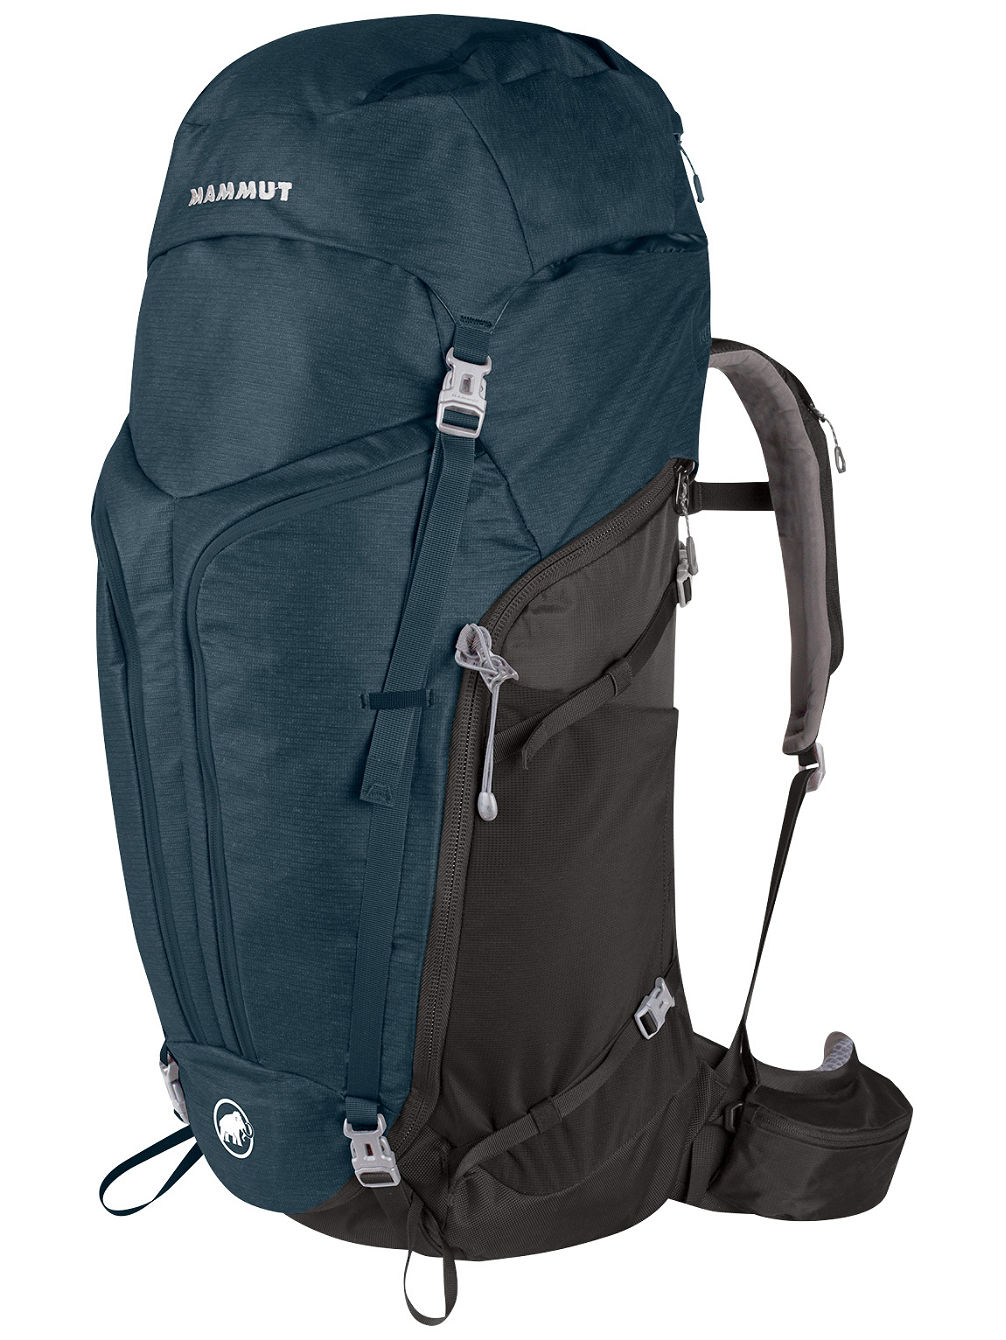 Creon Crest S 55+L Backpack